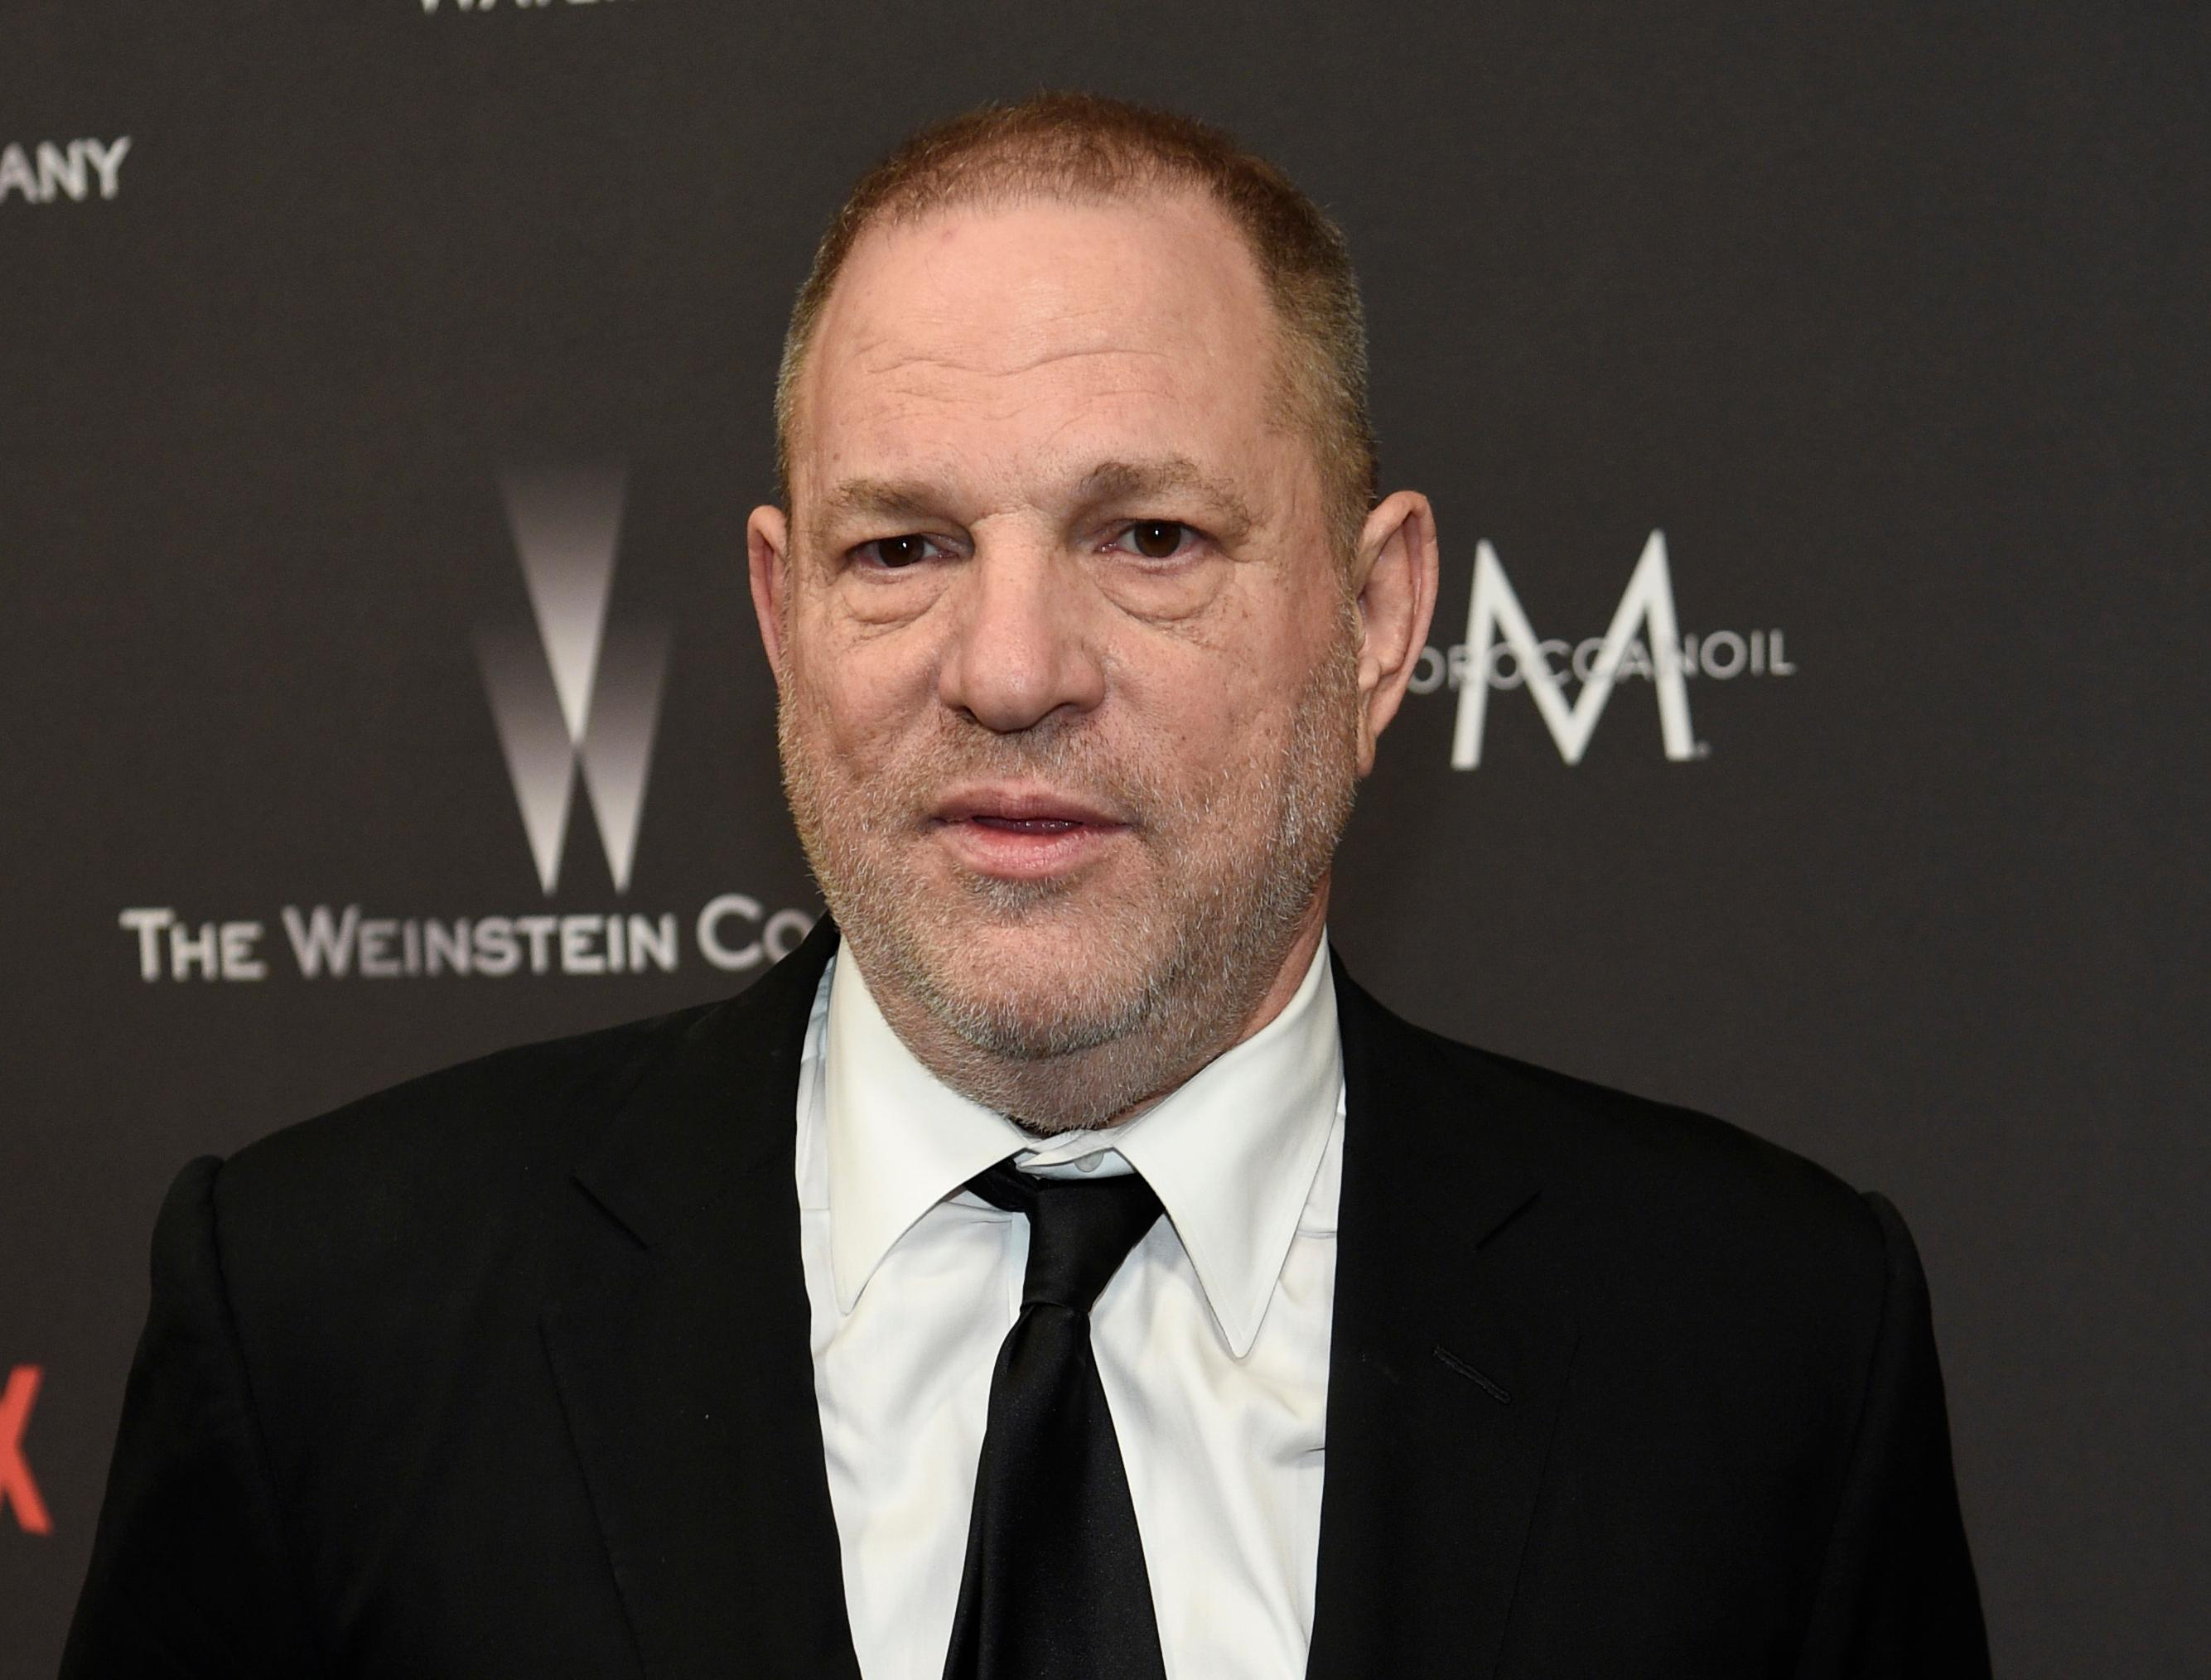 FILE - In this Jan. 8, 2017 file photo, Harvey Weinstein arrives at The Weinstein Company and Netflix Golden Globes afterparty in Beverly Hills, Calif. New York state's top prosecutor has launched a civil rights investigation into The Weinstein Co. following sexual assault allegations against Hollywood producer Harvey Weinstein. Attorney General Eric Schneiderman announced the probe Monday. His office says it issued a subpoena seeking all company records (Photo by Chris Pizzello/Invision/AP, File)